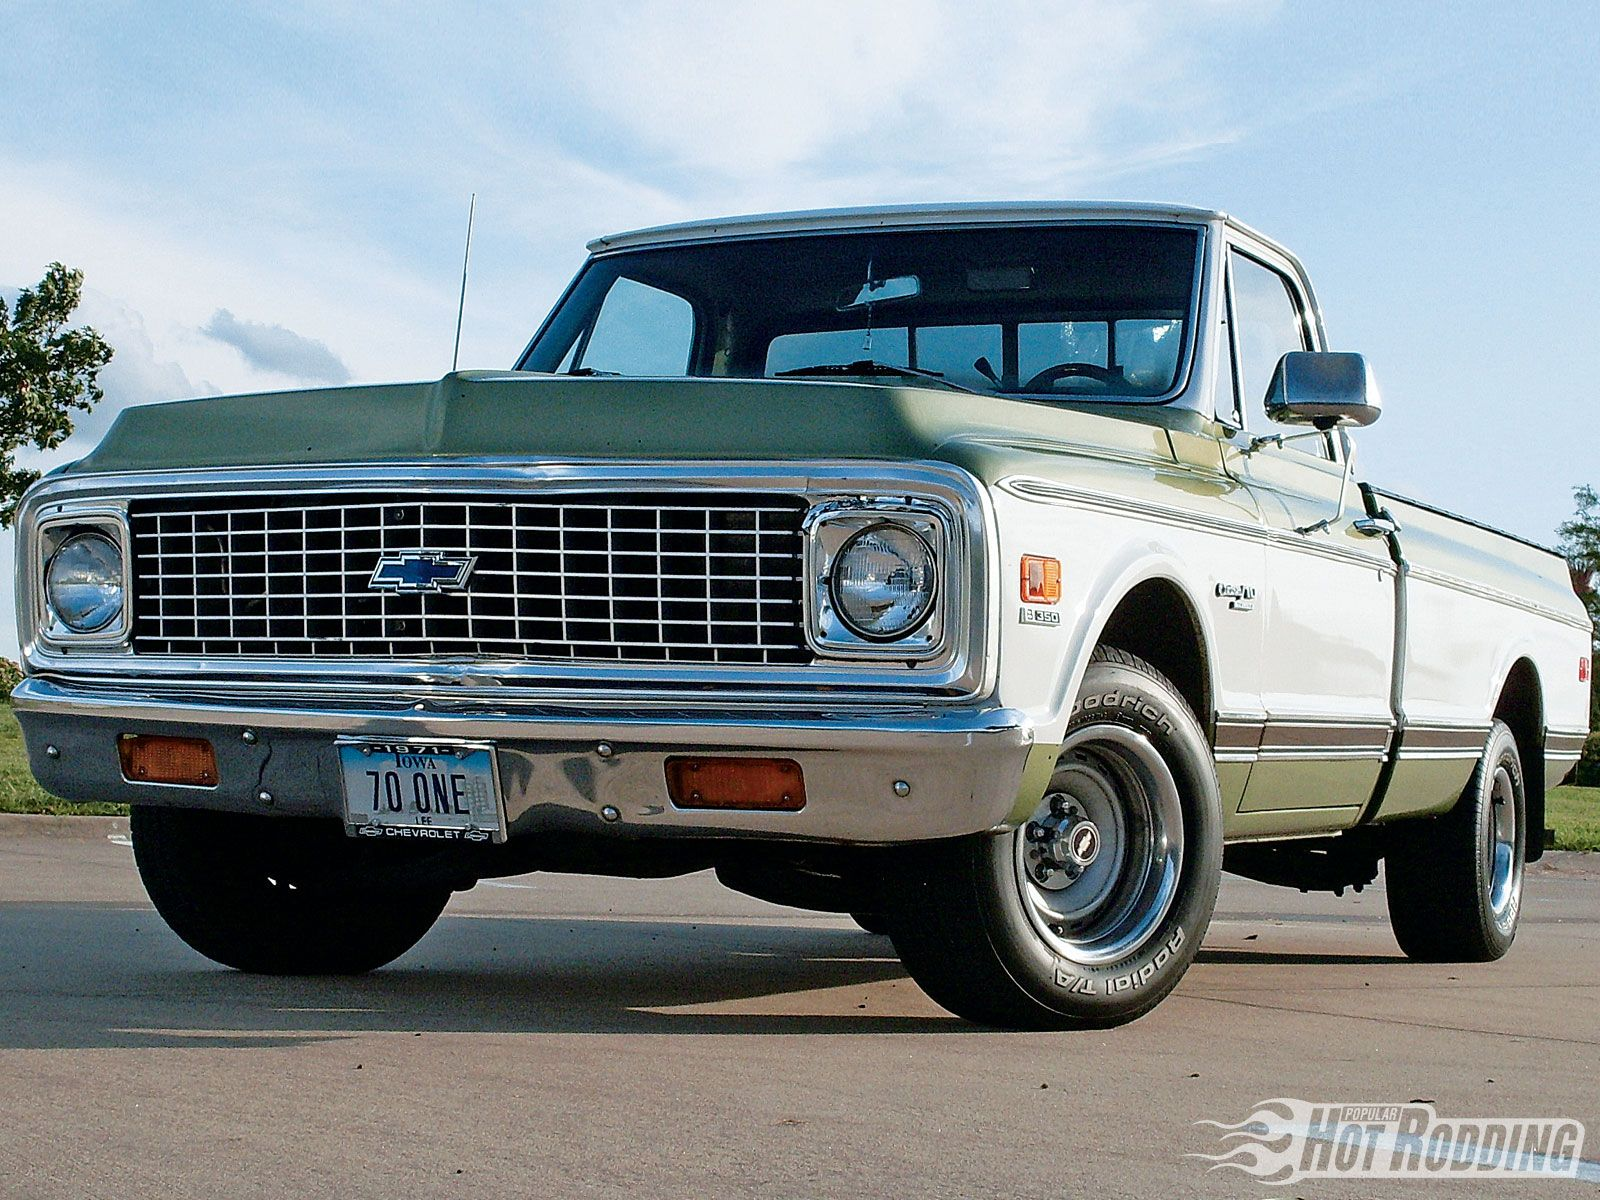 1971 chevy pickup what were they thinking with that green color  [ 1600 x 1200 Pixel ]